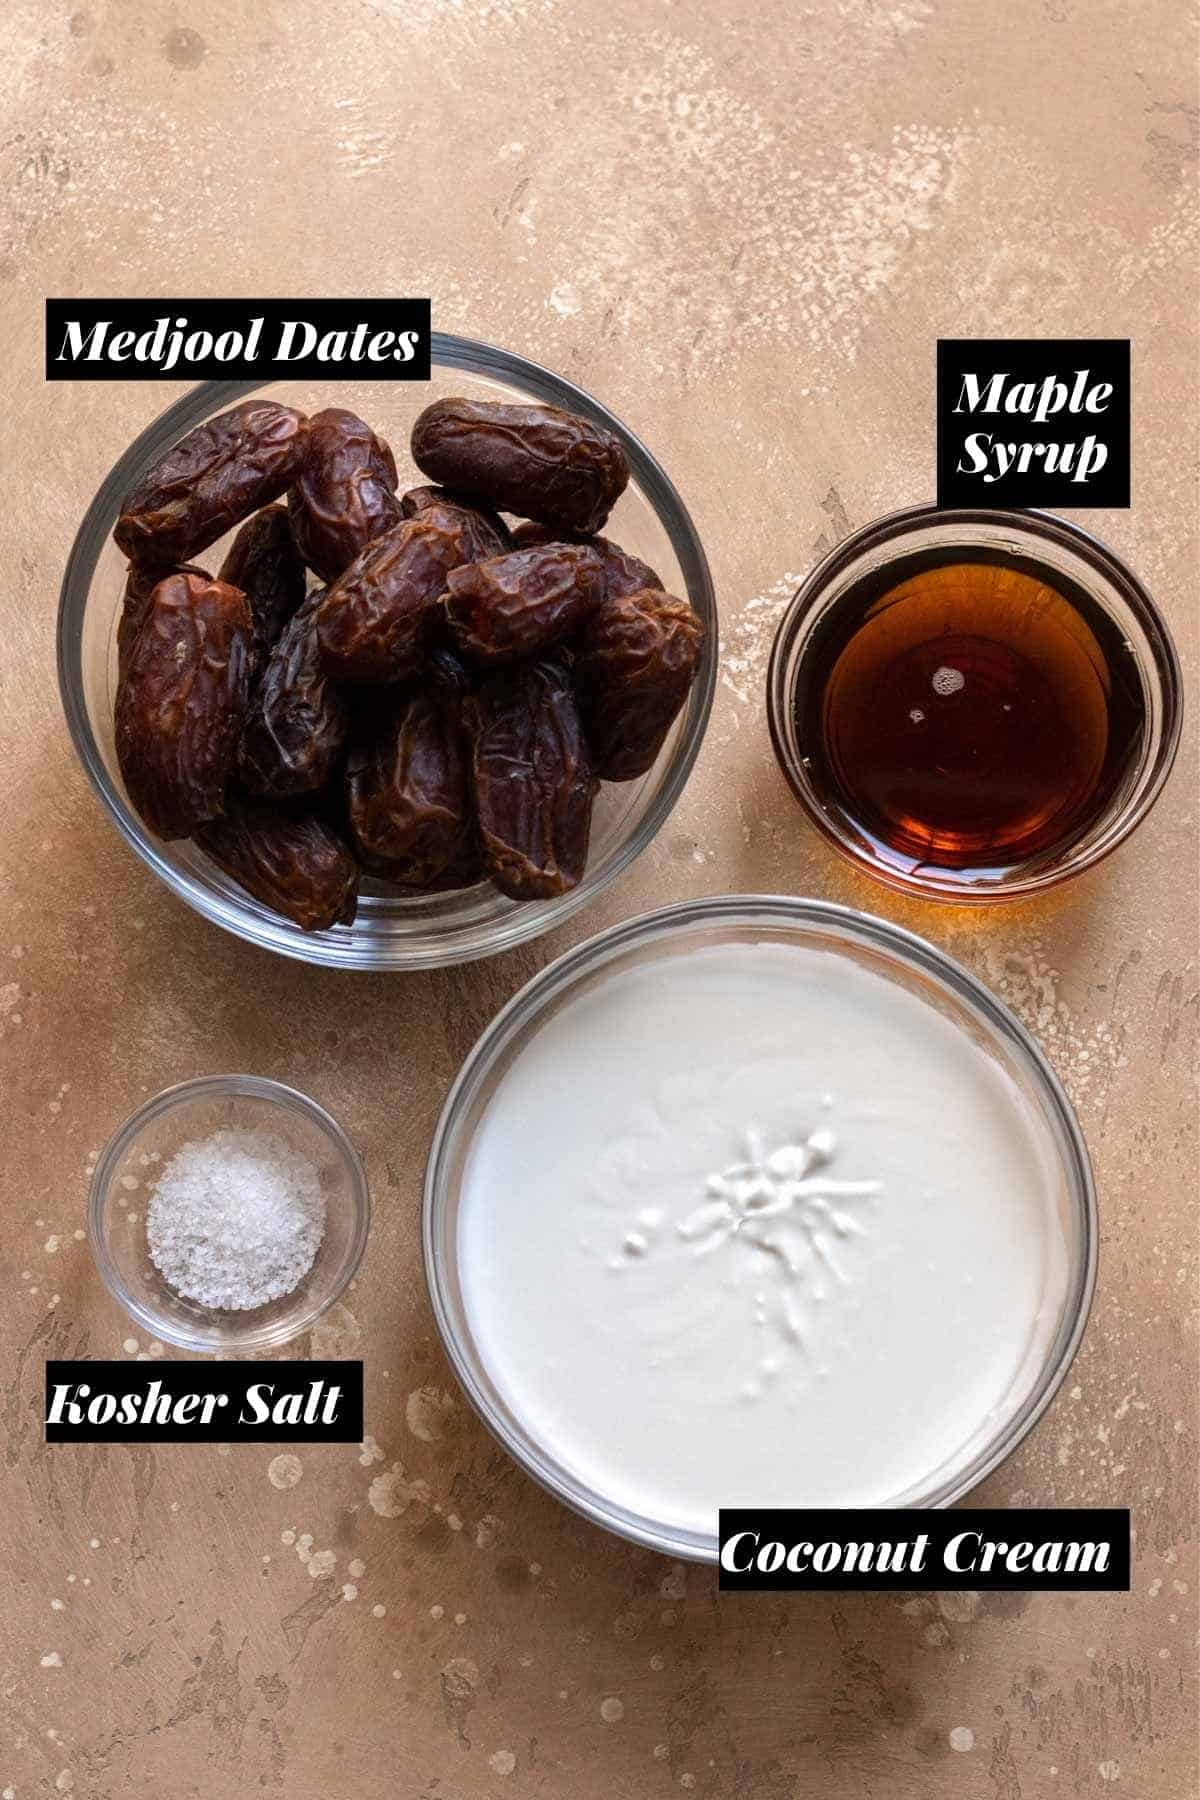 Ingredients needed measured into individual glass bowls.